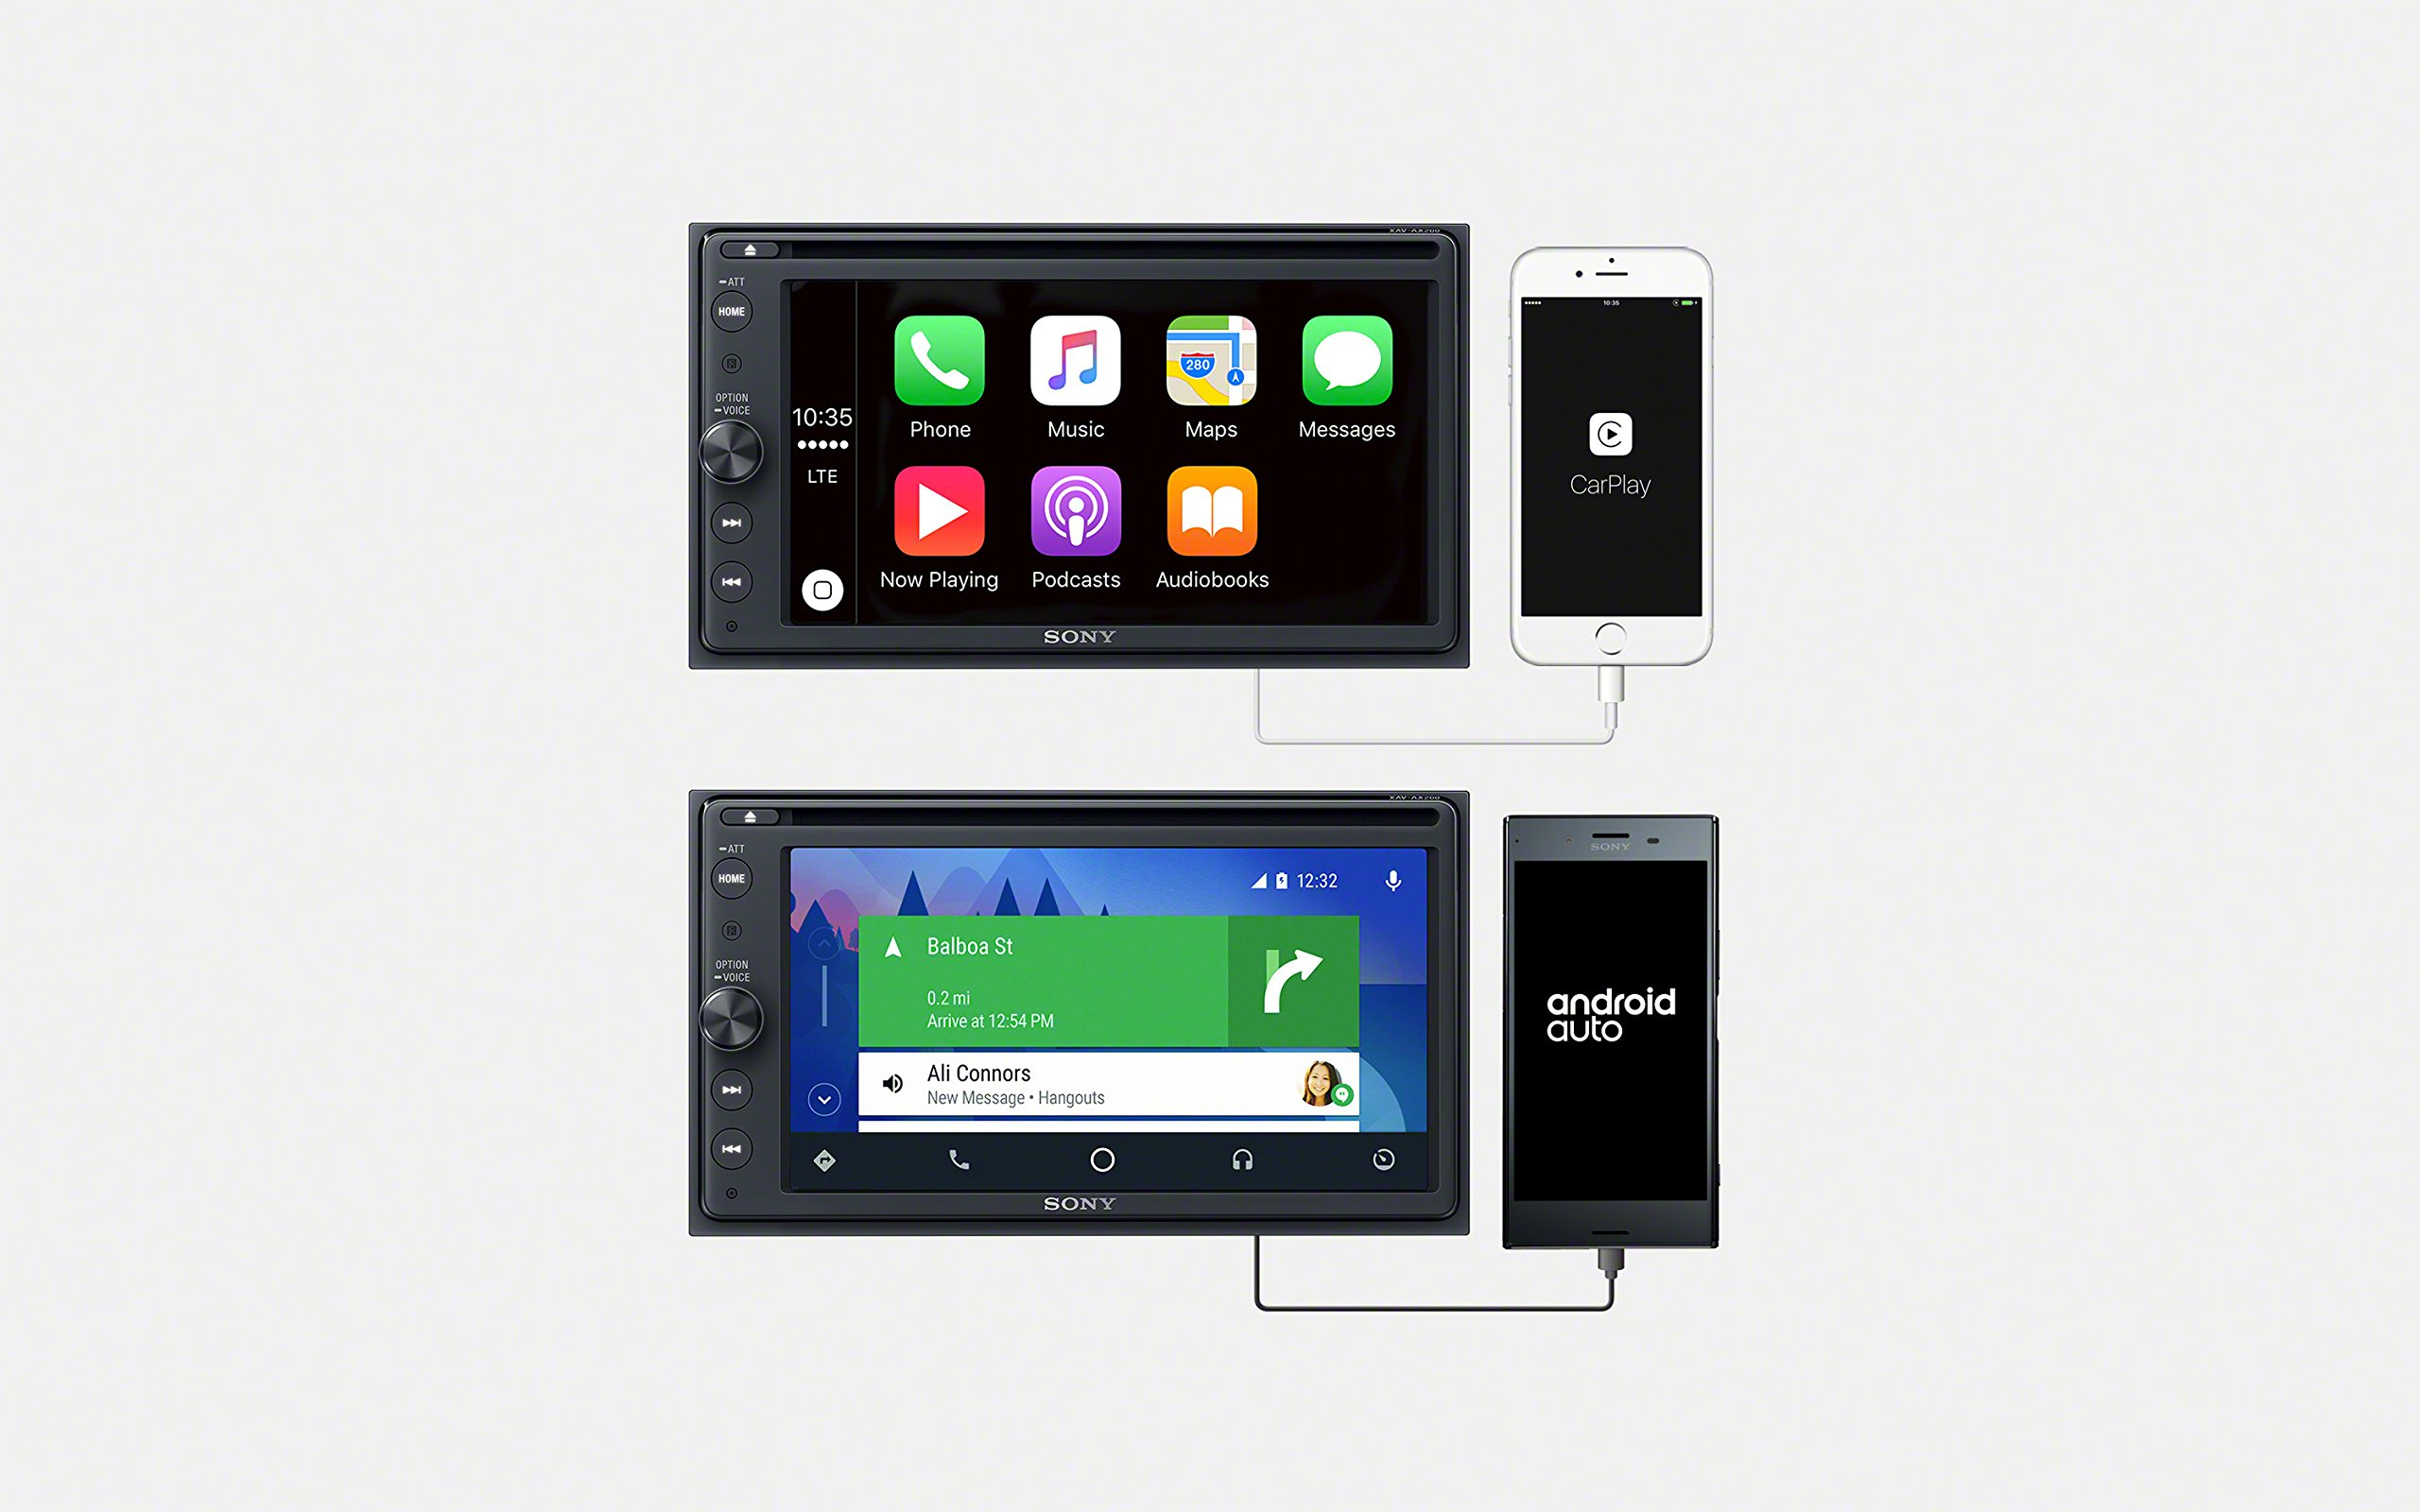 Sony-XAV-AX100-163-cm-64-Zoll-Media-Receiver-mit-Bluetooth-Apple-CarPlay-und-Android-Auto-Navigation-Spotify-2-Din-Autoradio